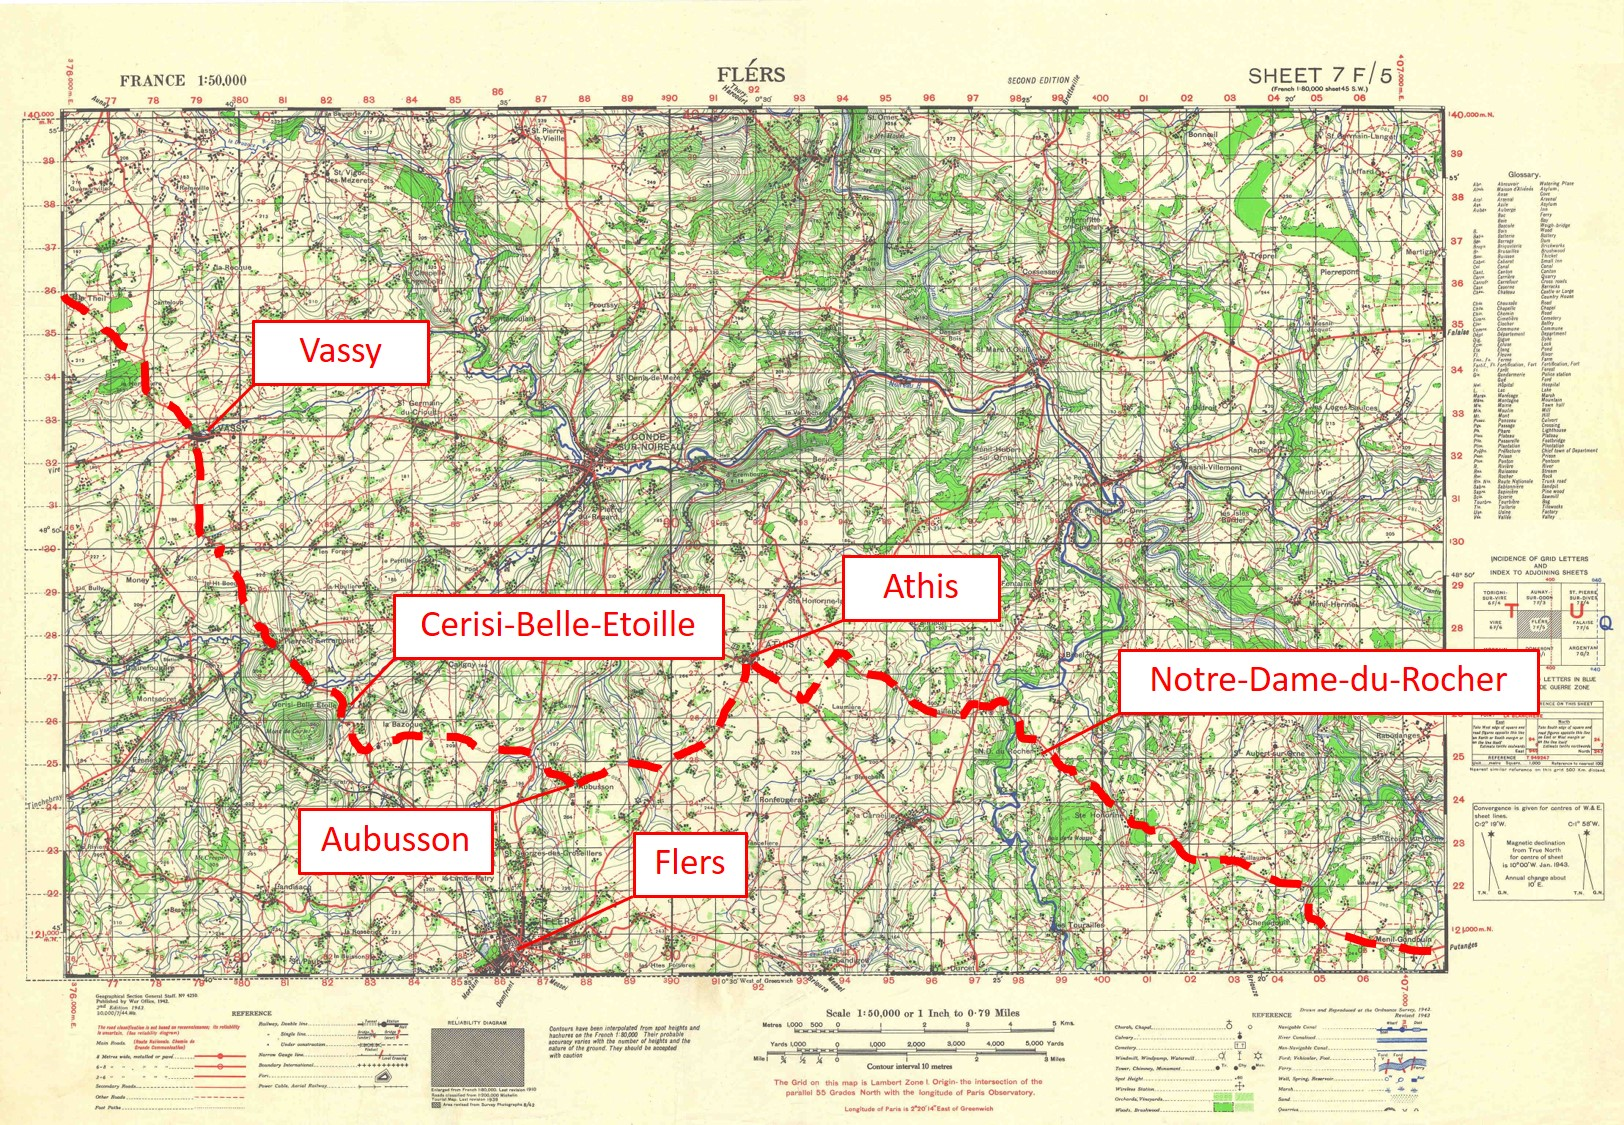 011B - GSGS-4250-7F-5-Flers-route